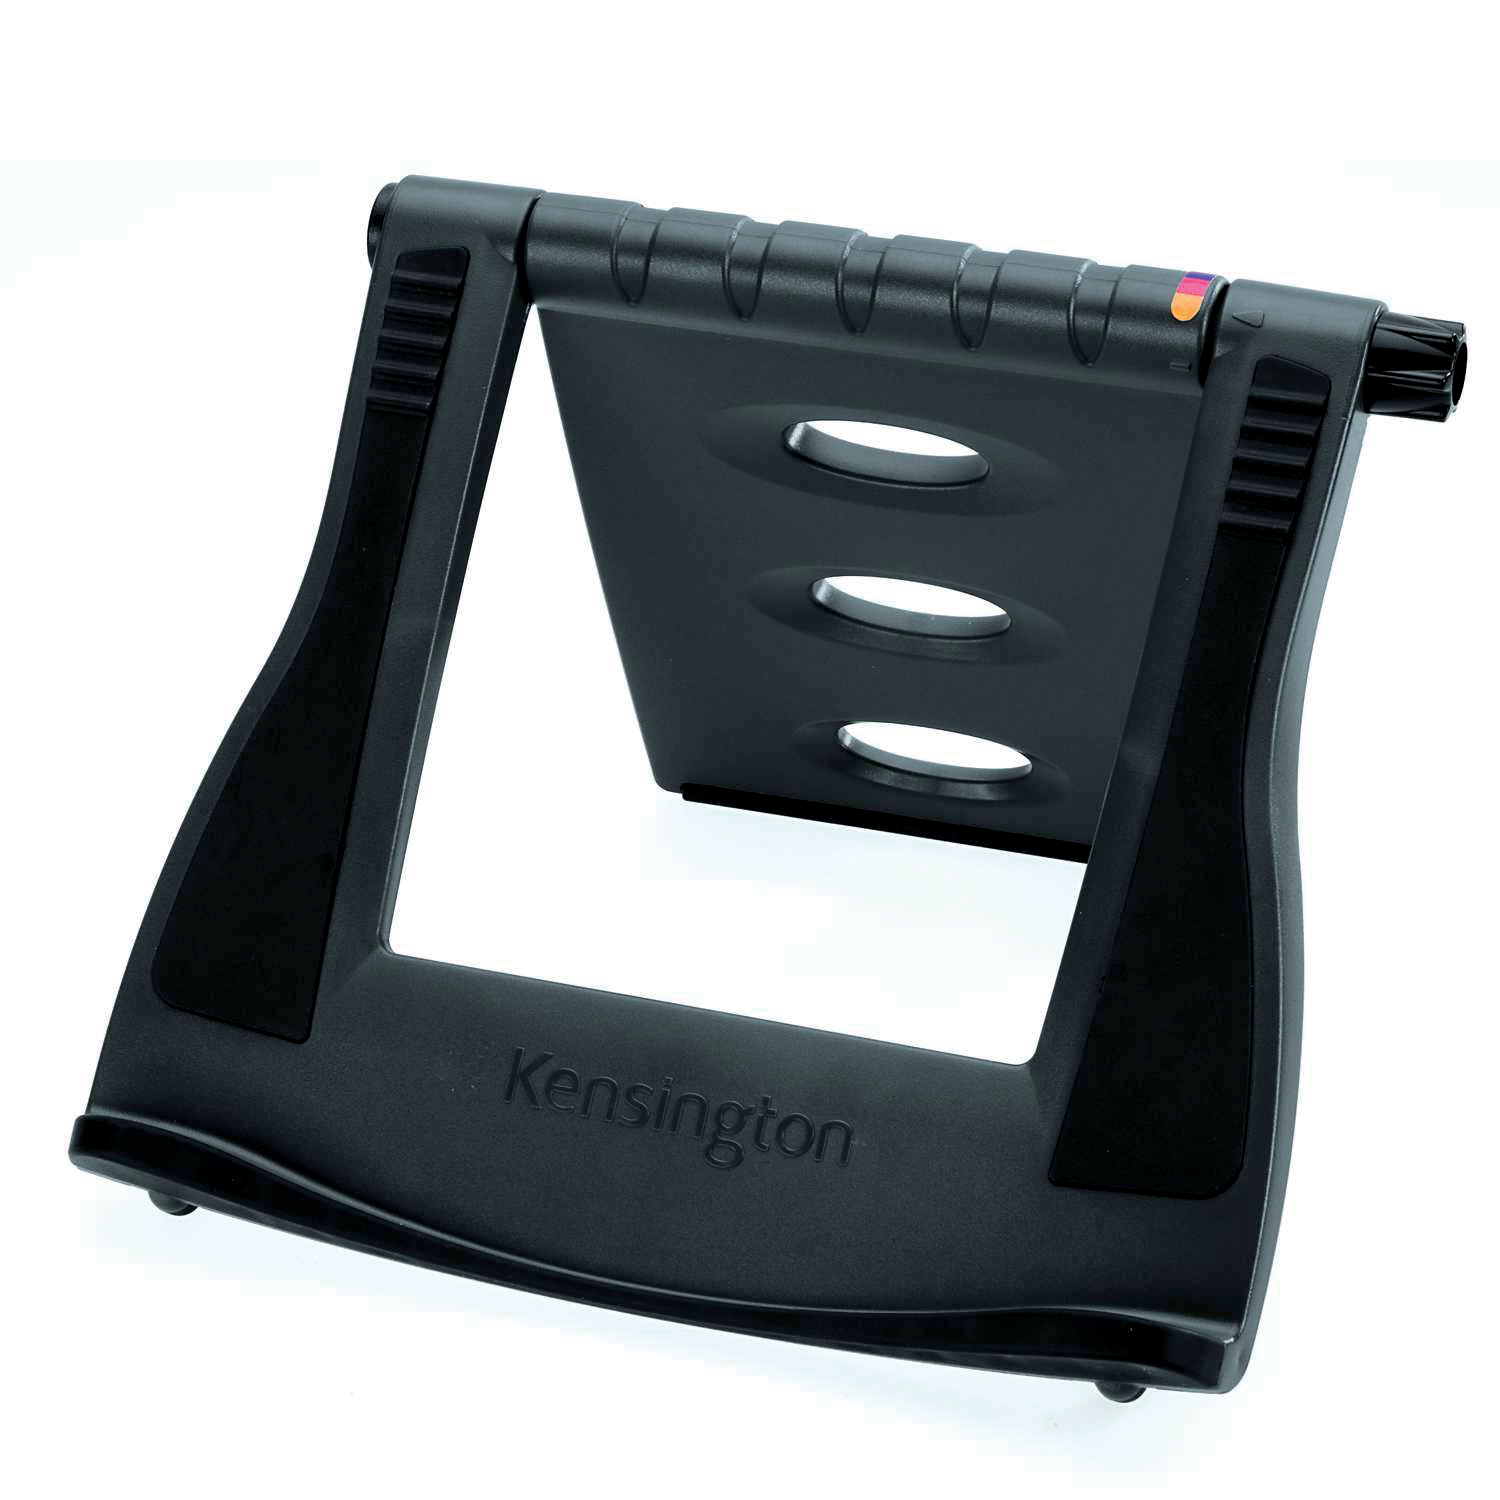 Stands, Holders & Car Mounts Kensington Easy Riser Cooling Stand/dark Grey/good Condition/for Laptop/notebook